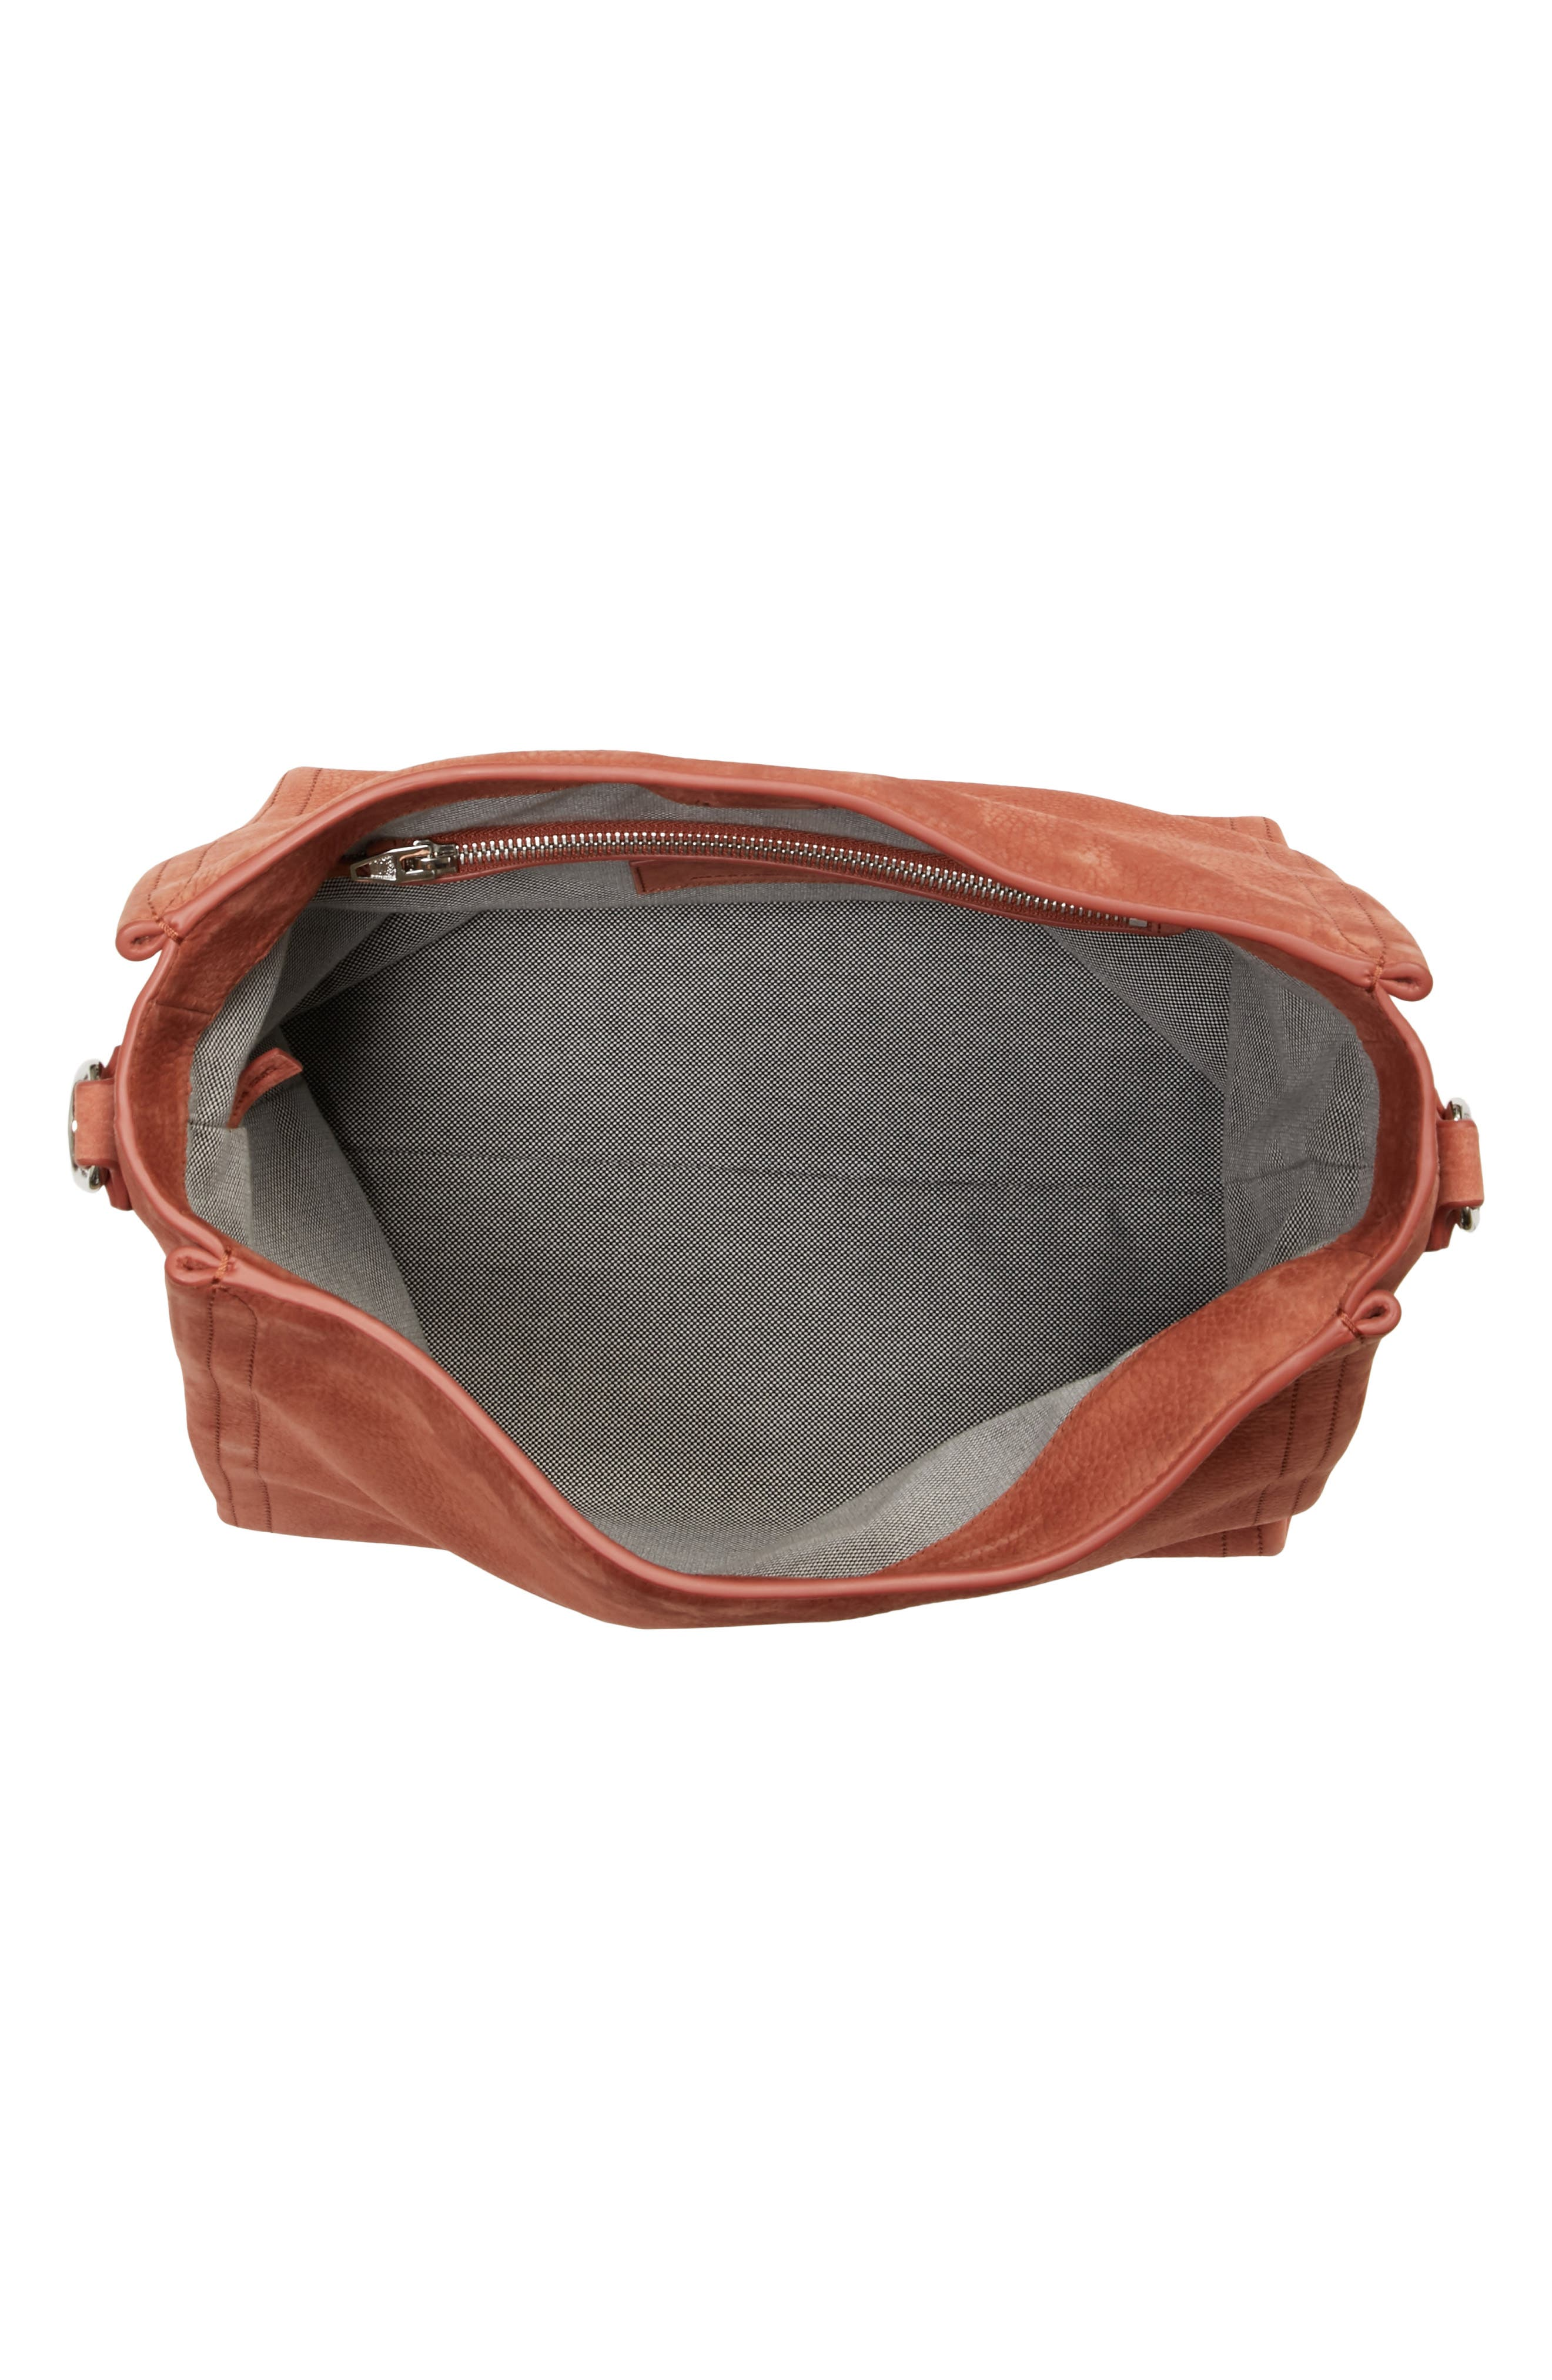 Darcy Pebbled Leather Hobo,                             Alternate thumbnail 4, color,                             200